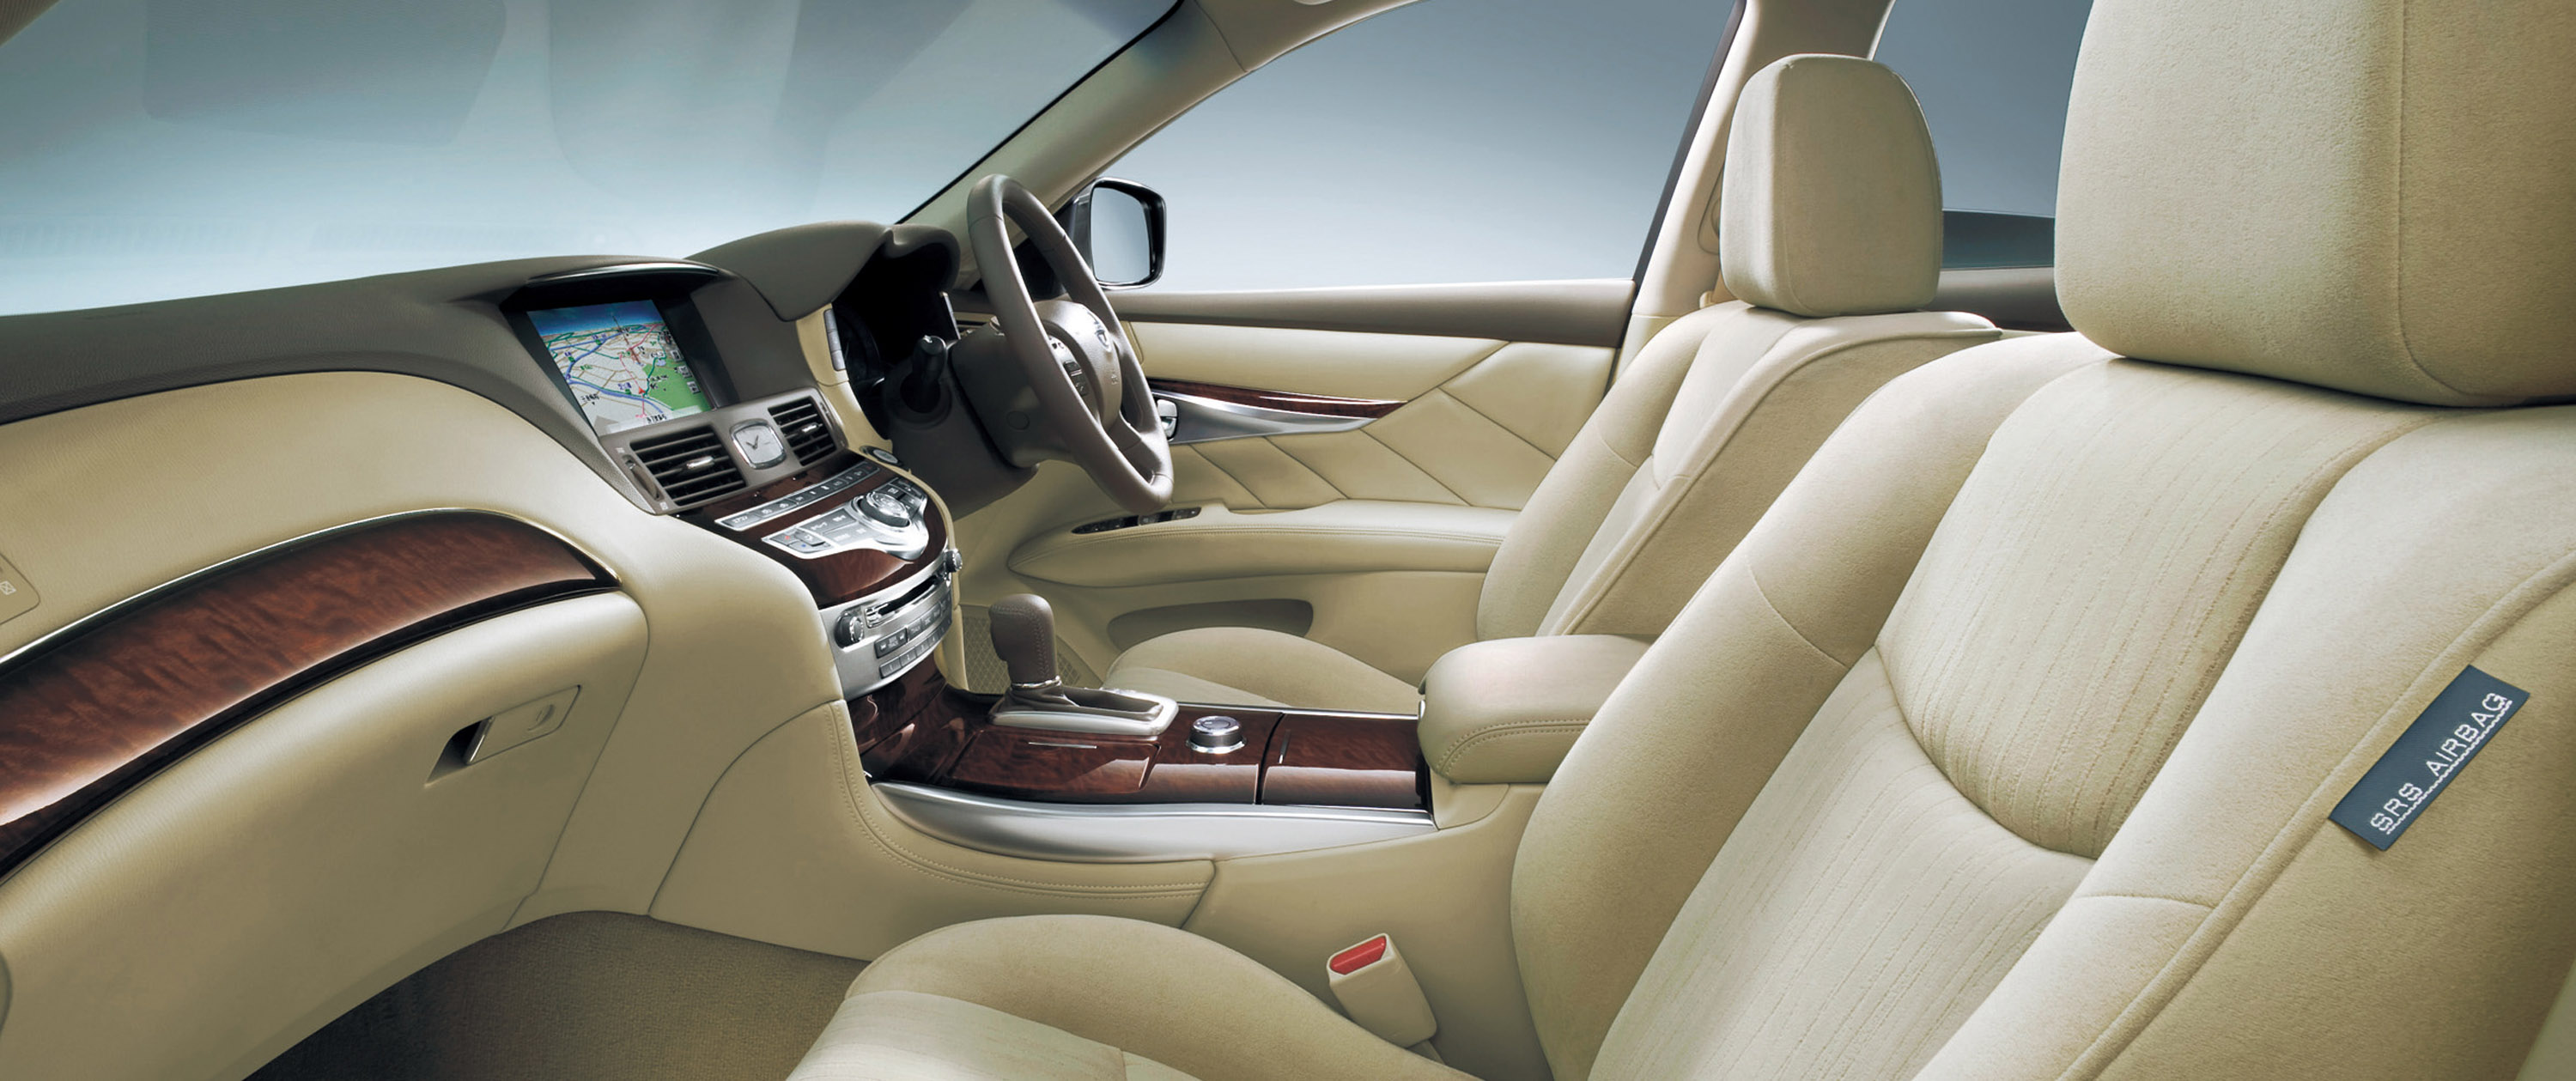 2010 Nissan Fuga Hybrid - Picture 44398